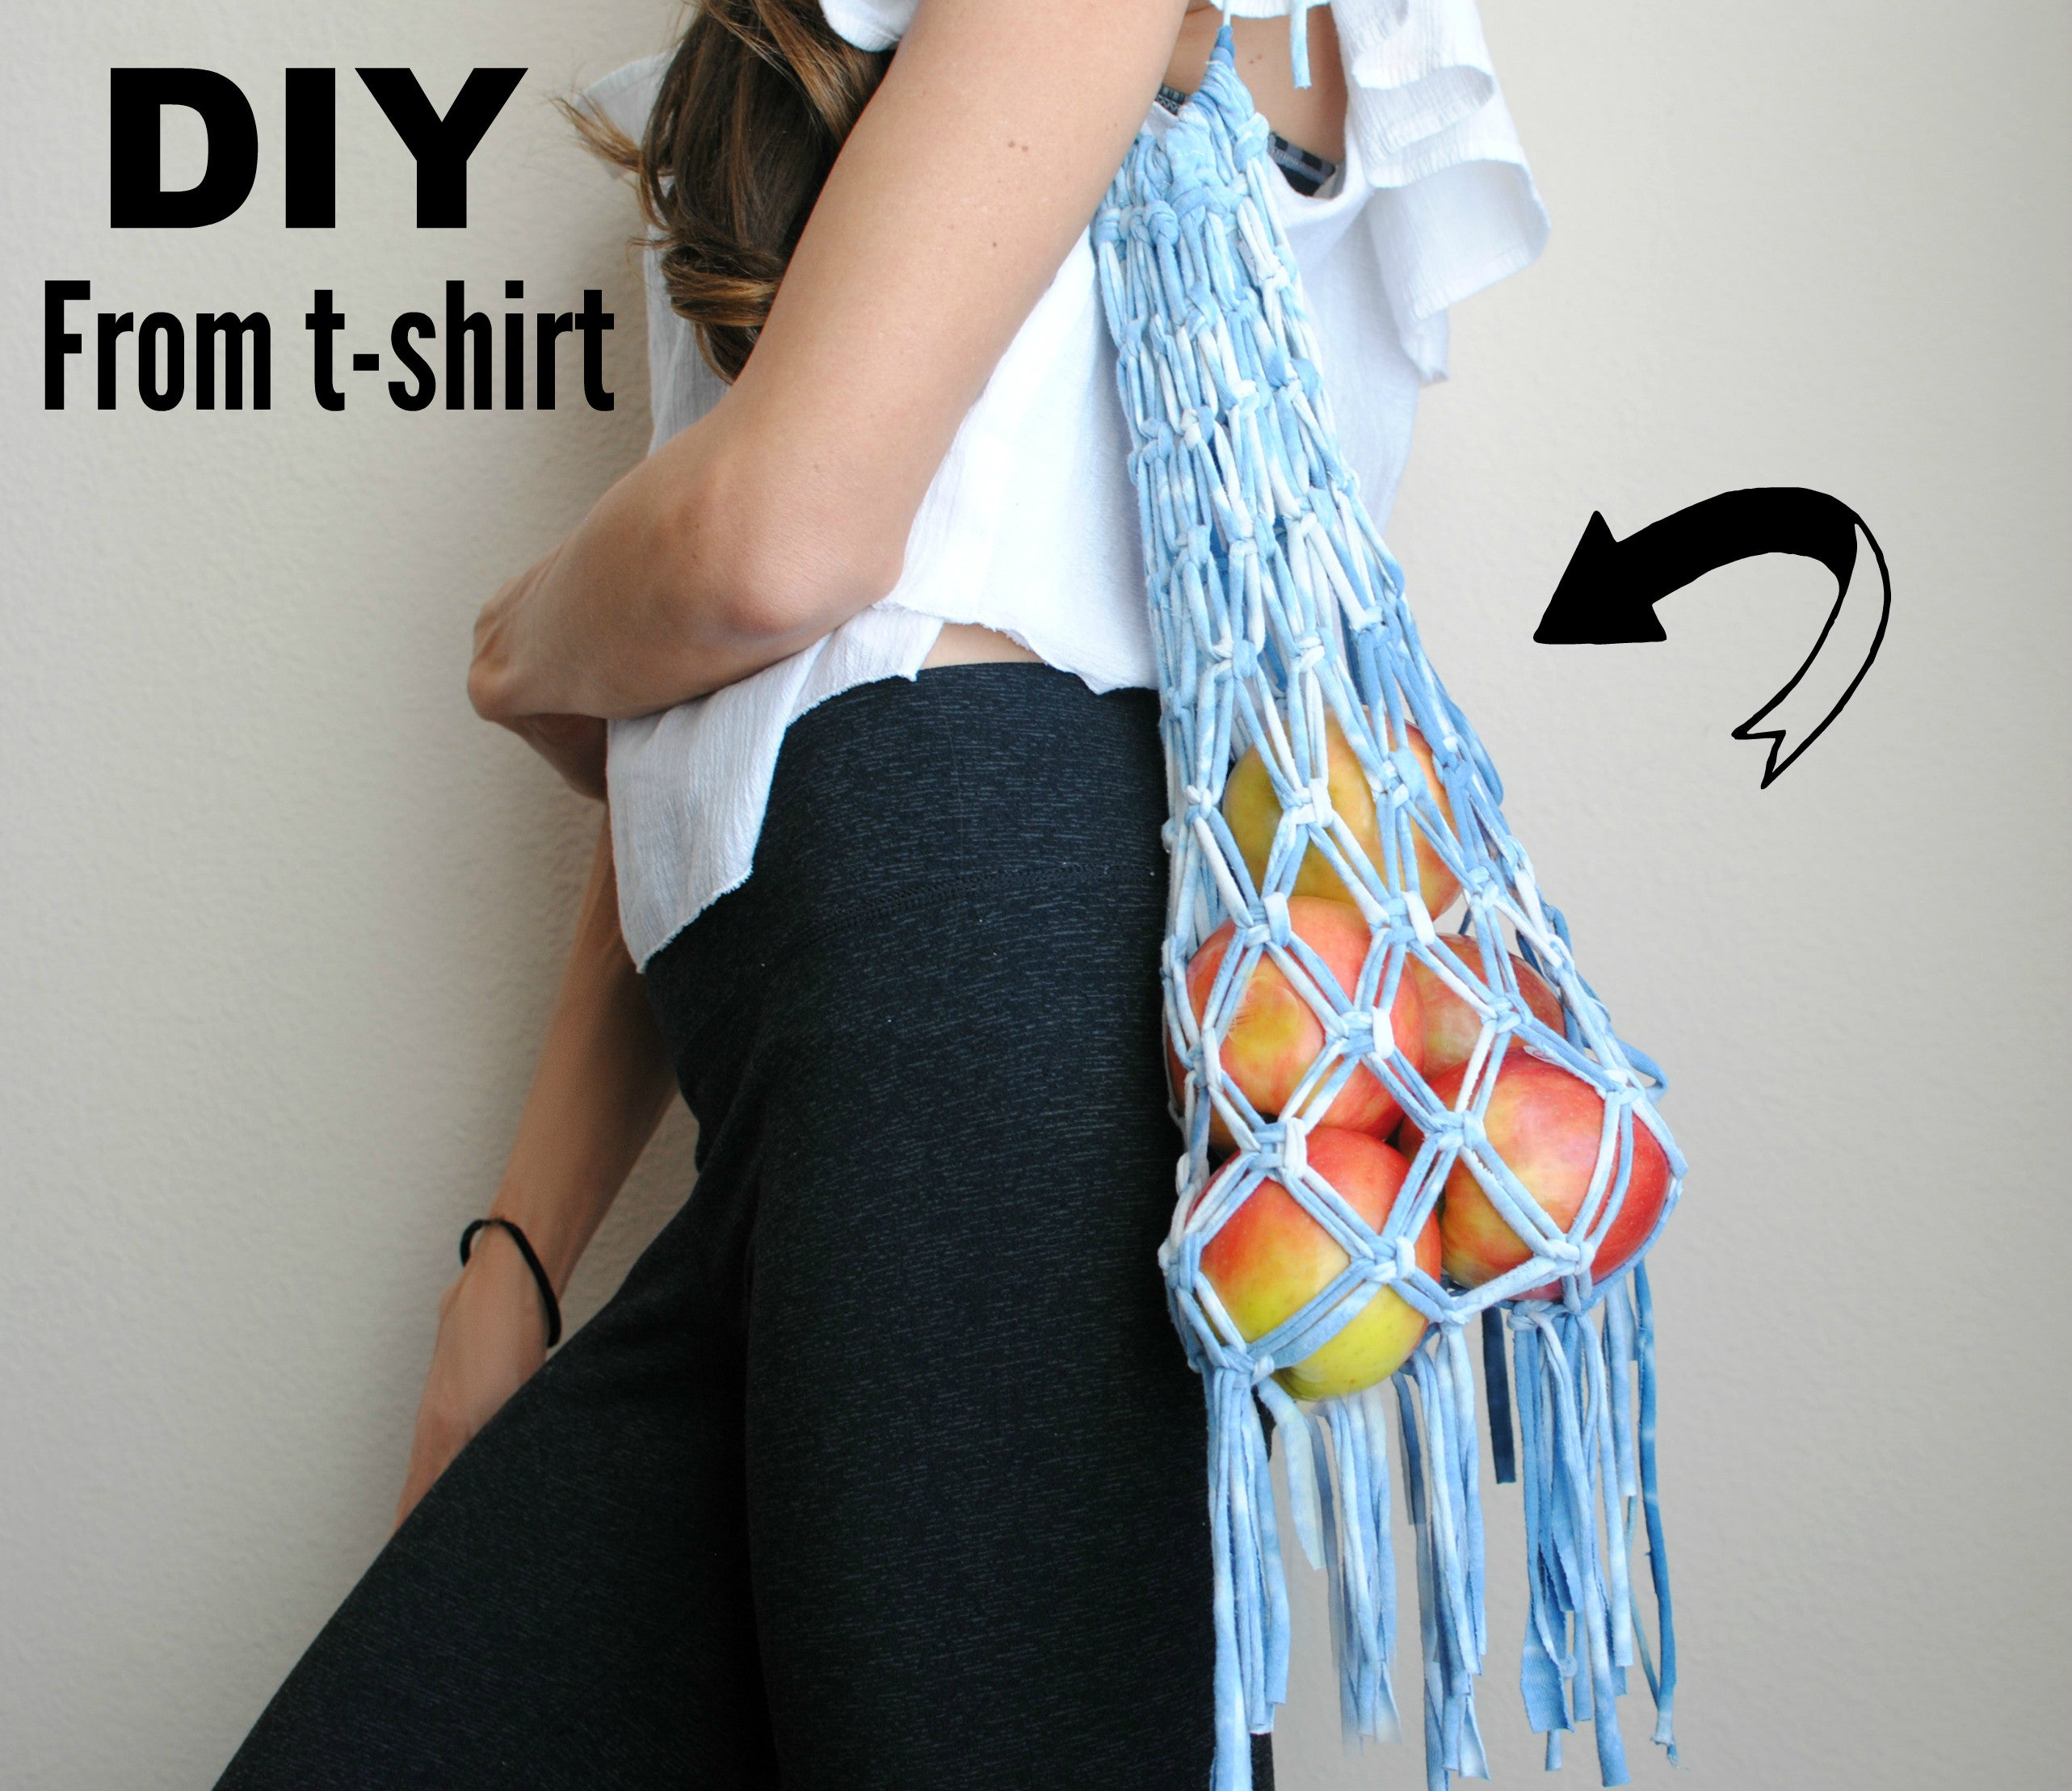 DIY: T-shirt Upcycle into Macrame Tote Bag - Plastic Free Shopping